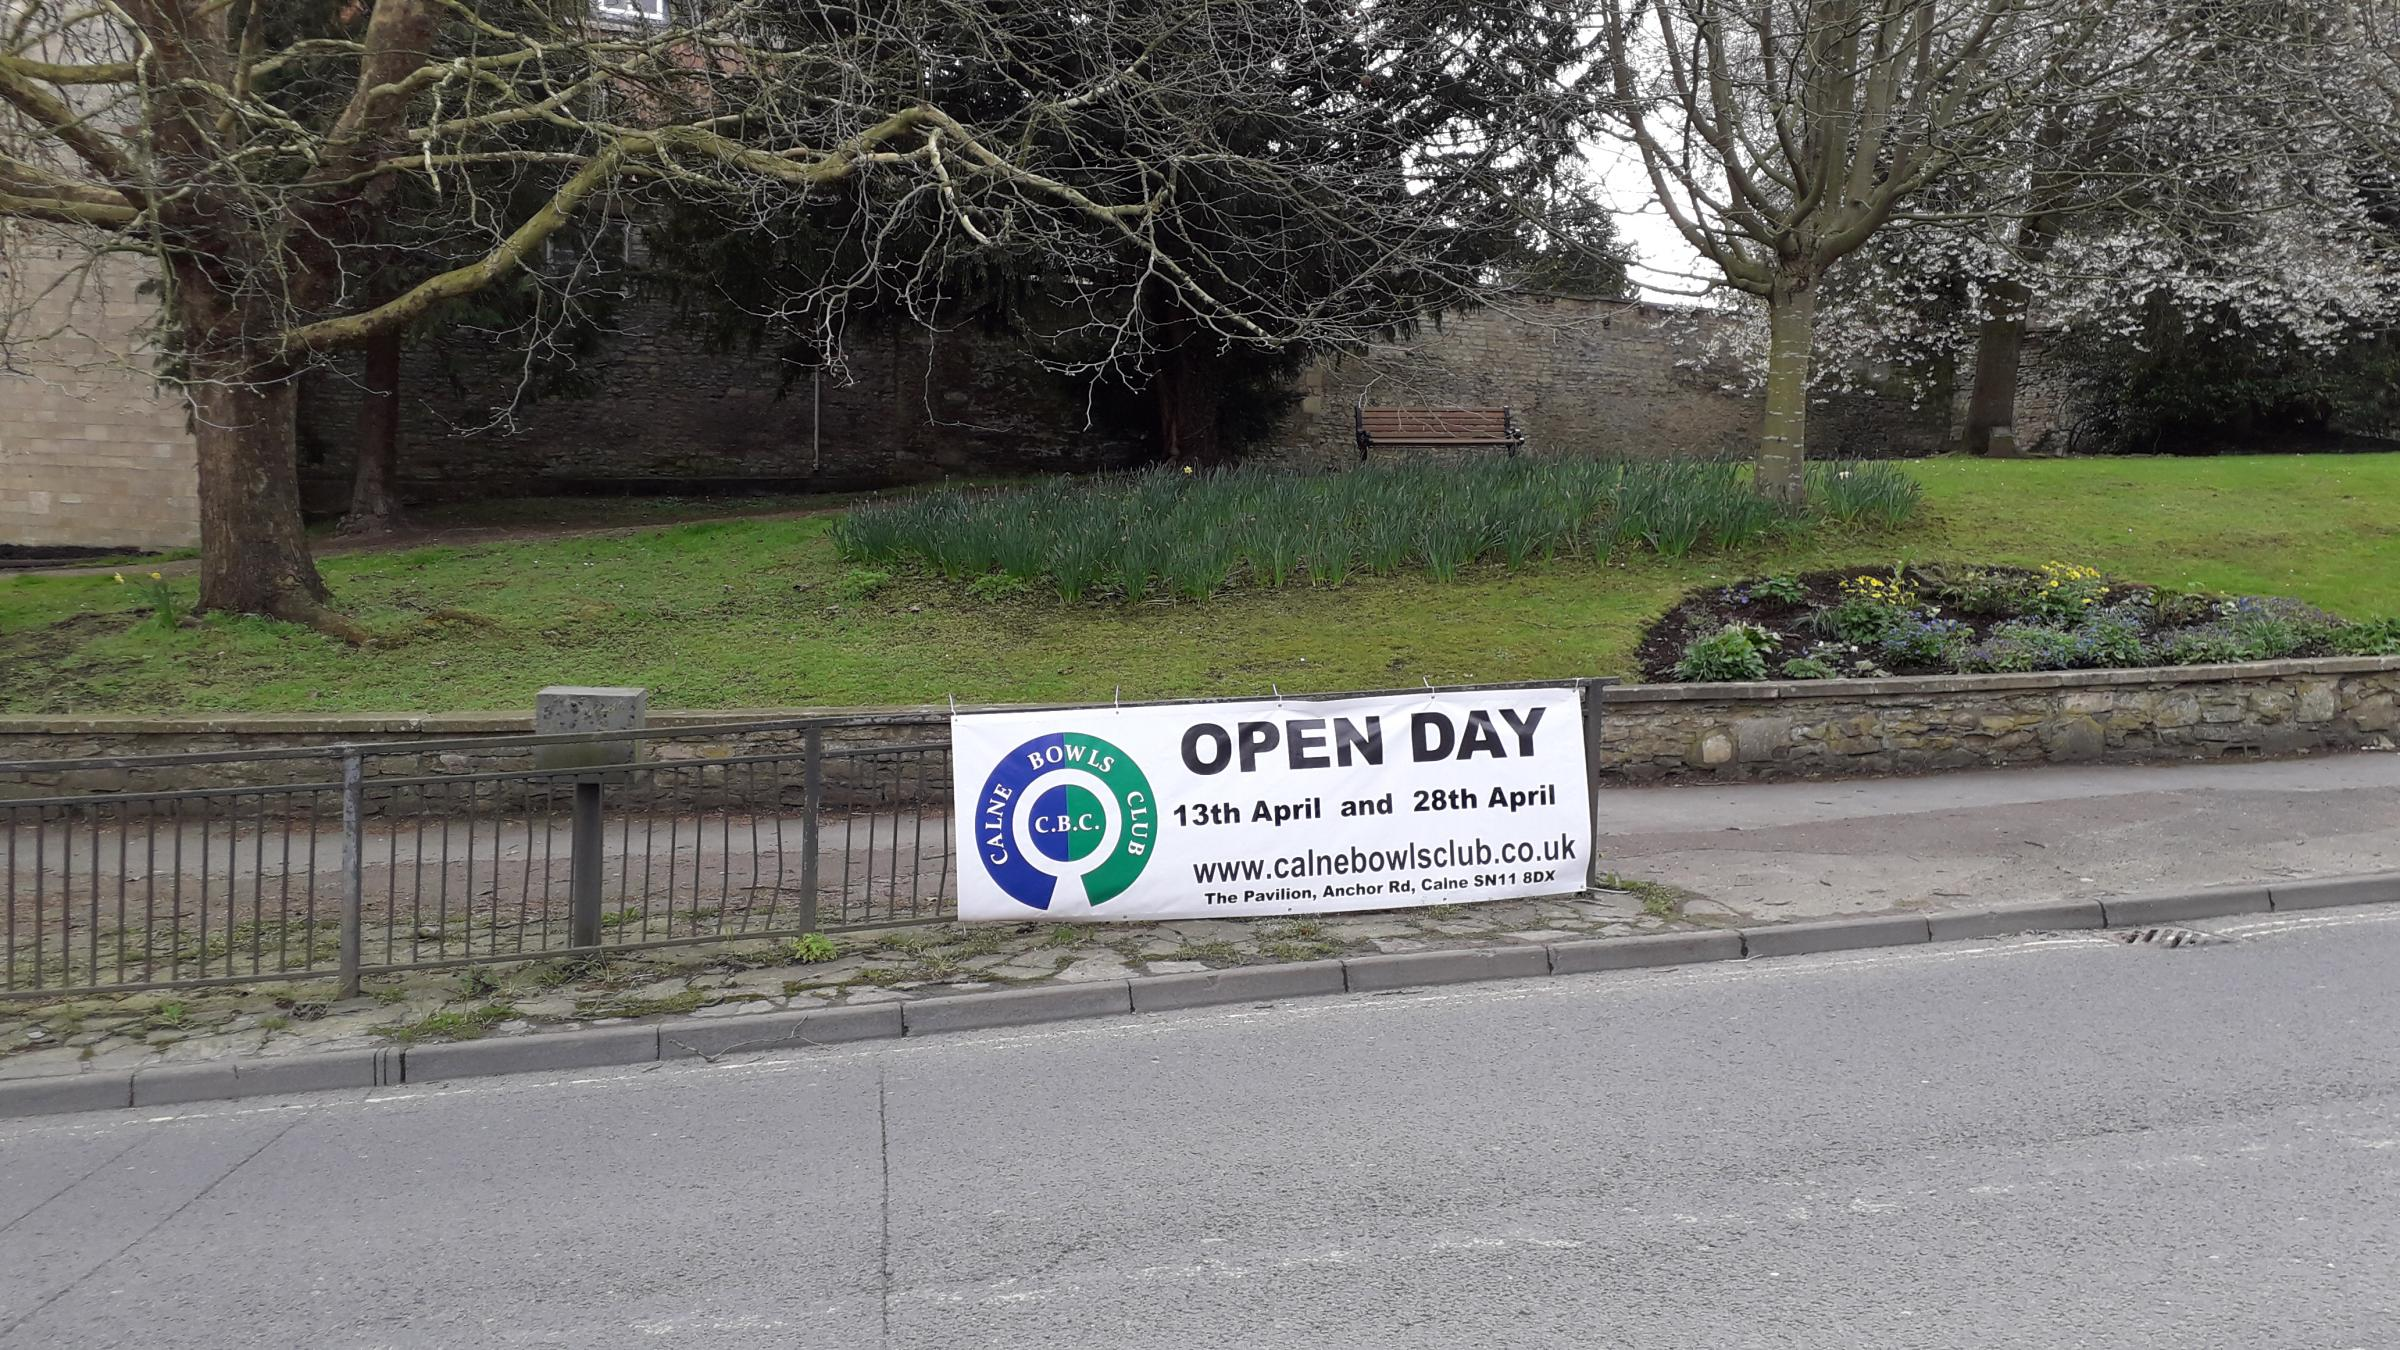 Calne Bowls Club: Public Open Day